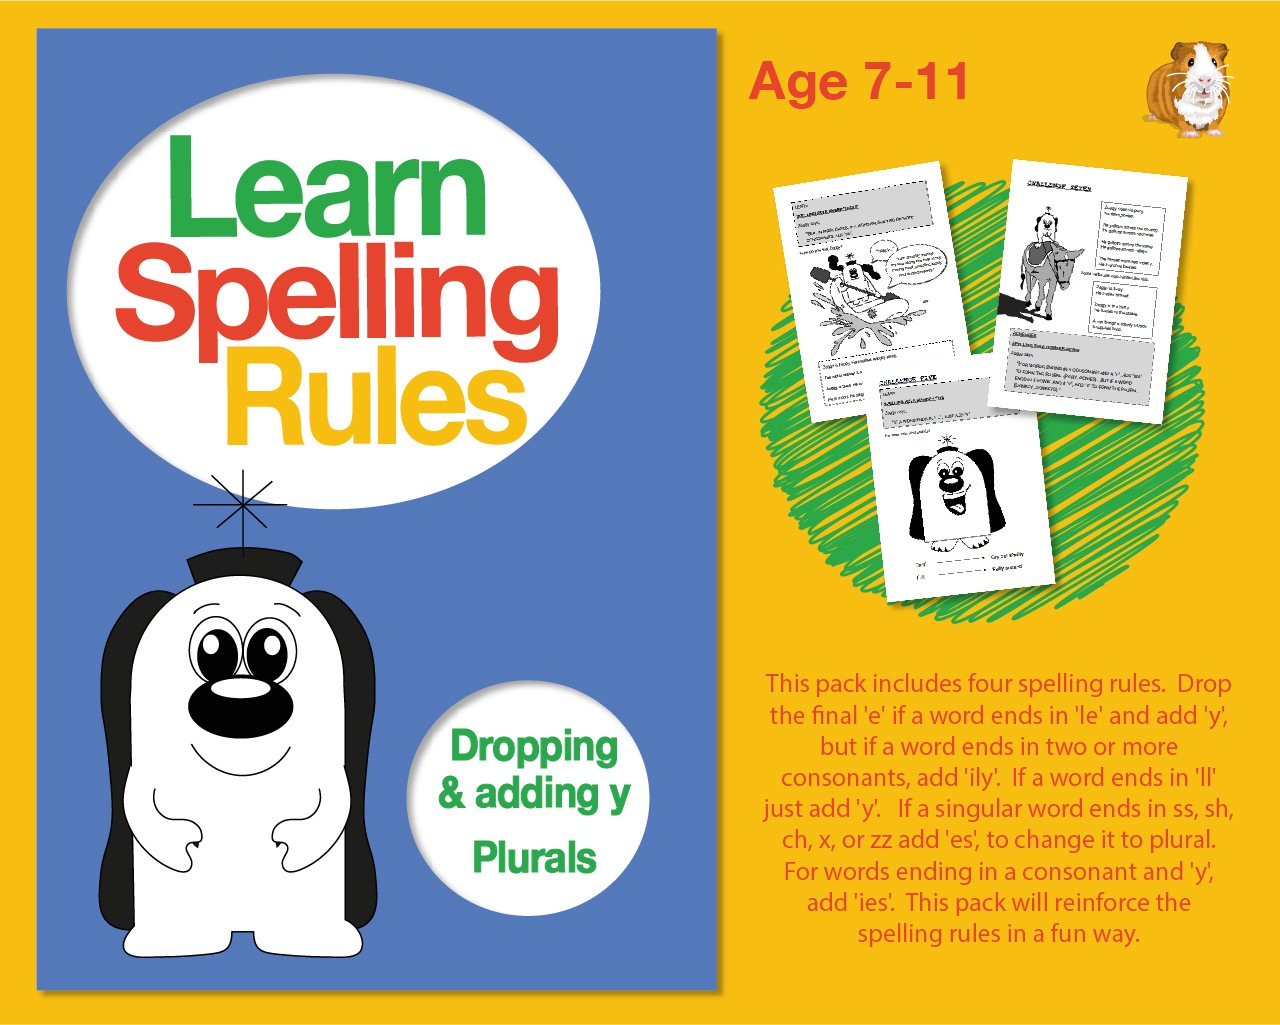 Learn Spelling Rules: Dropping And Adding 'y' And Plurals (7-11 years)